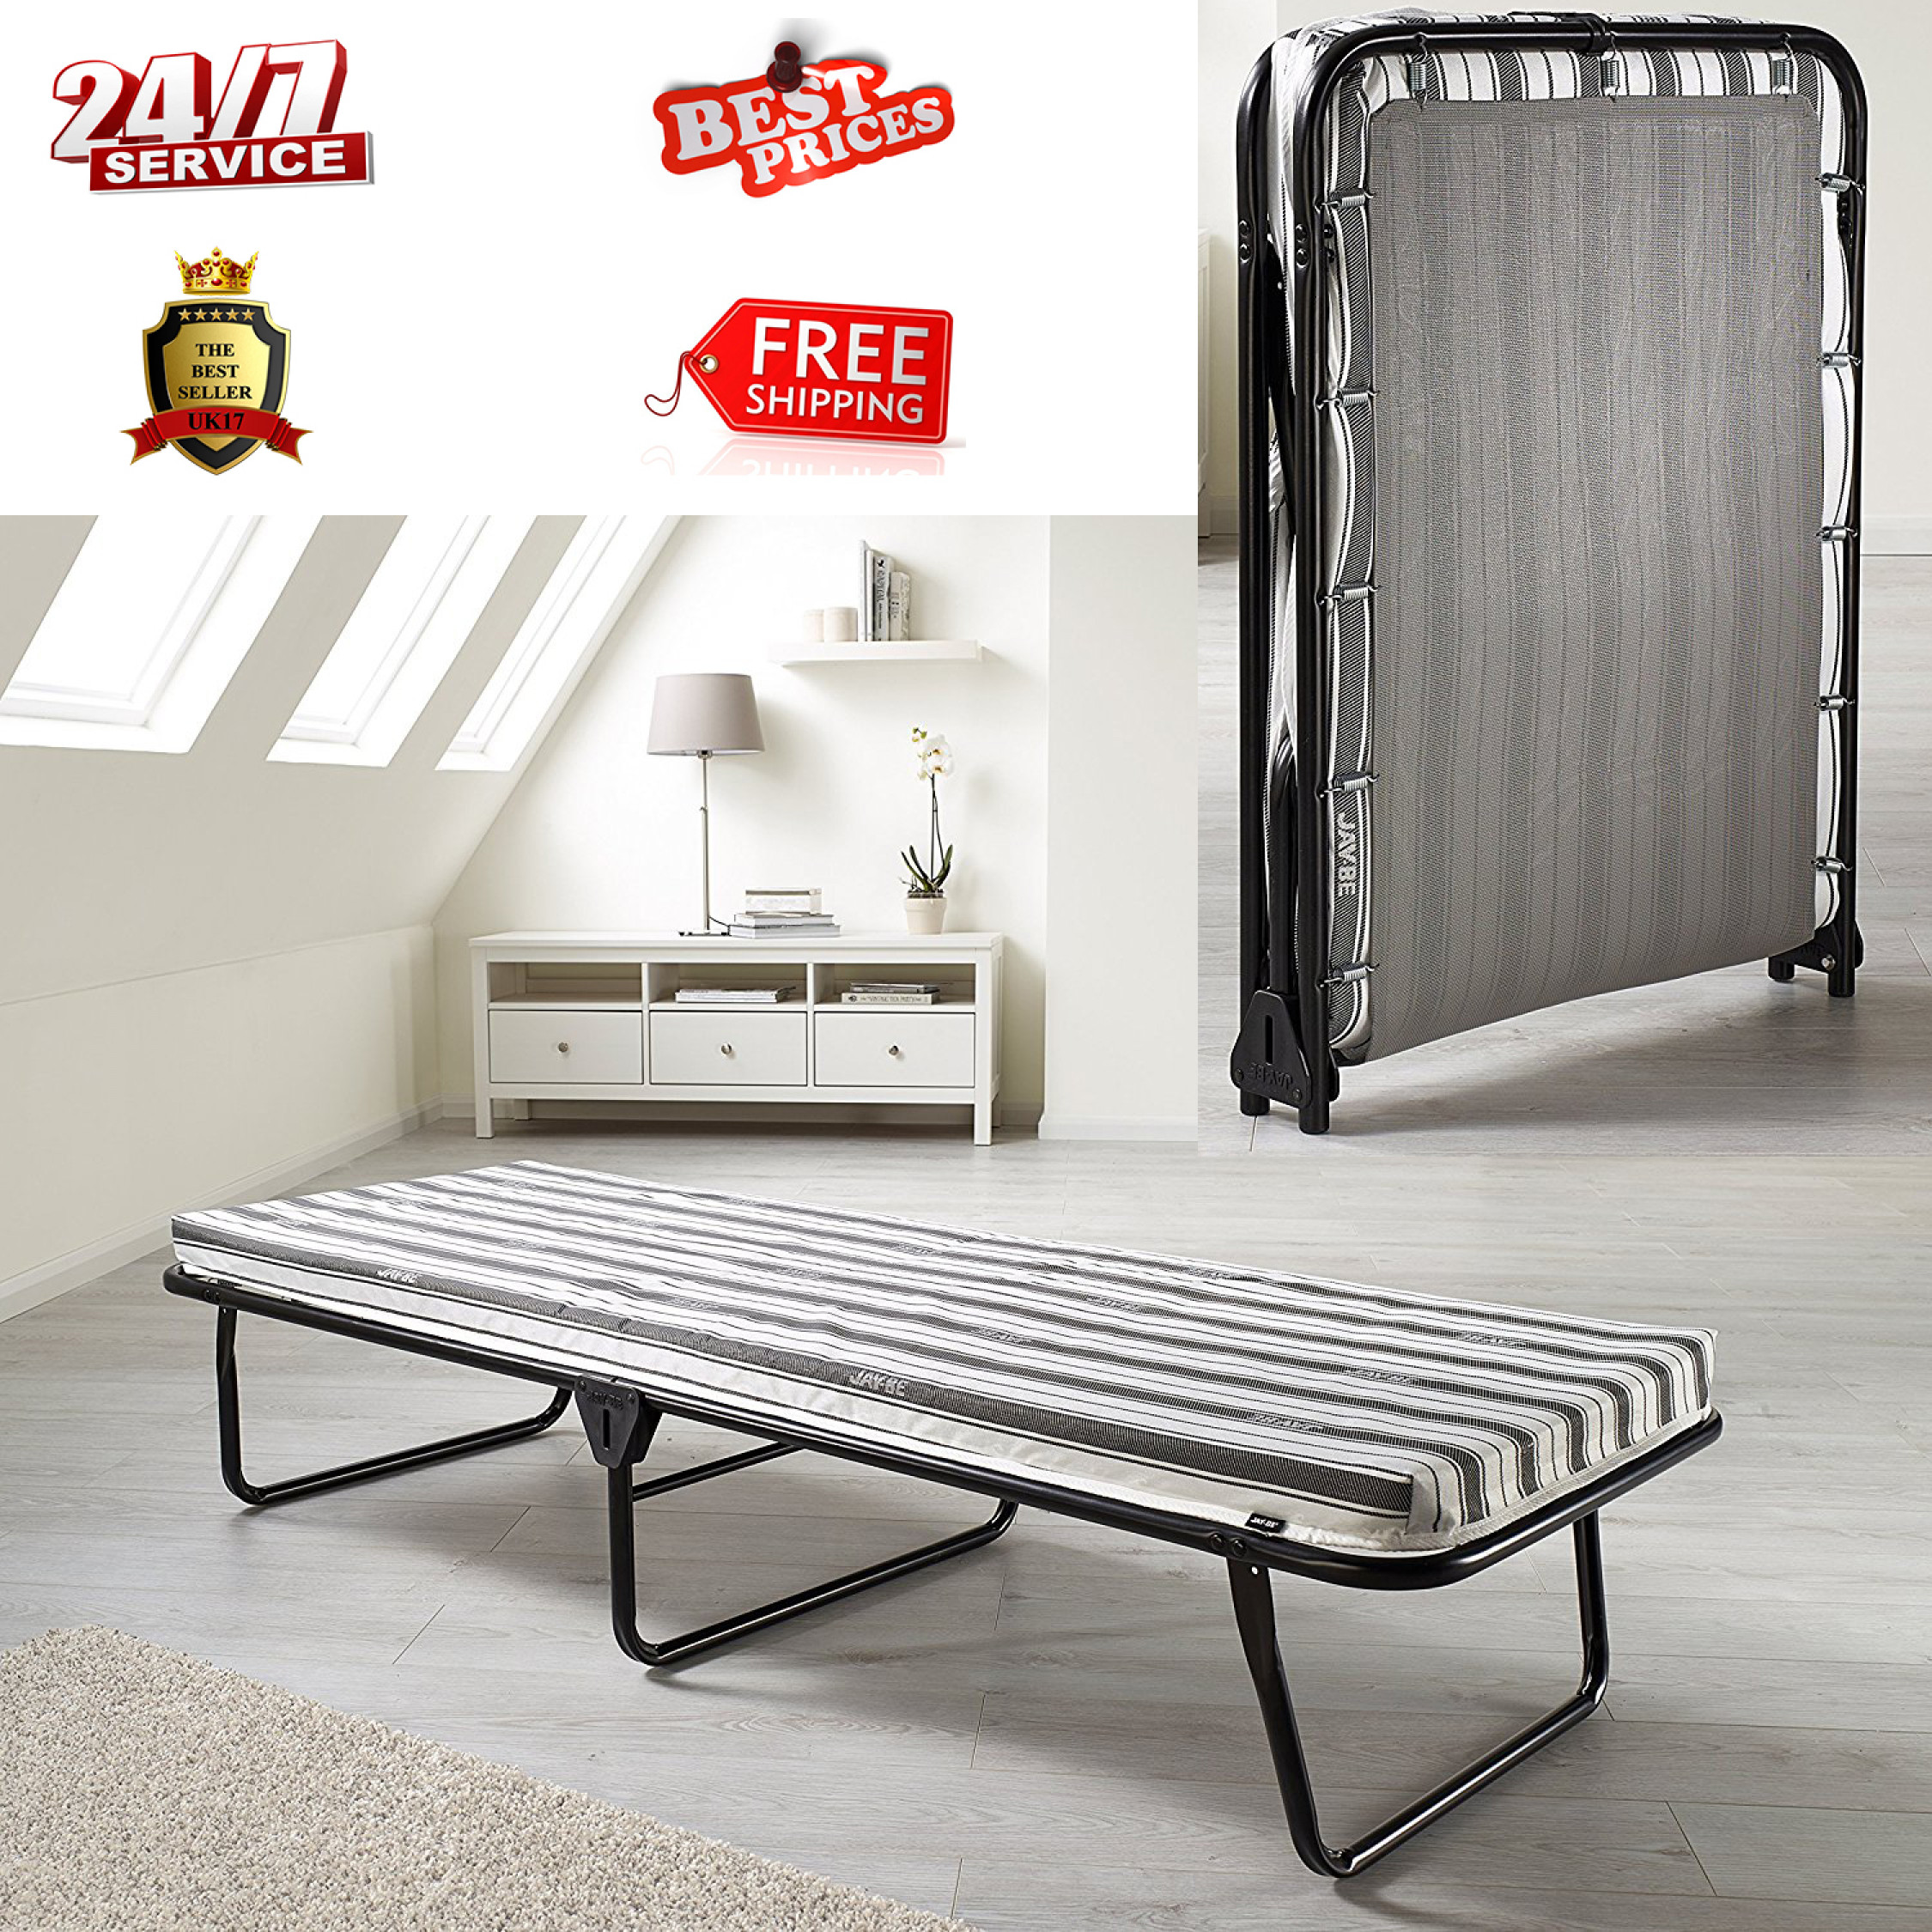 lightweight compact single bed airflow up mattress breathable folding fold guest itm